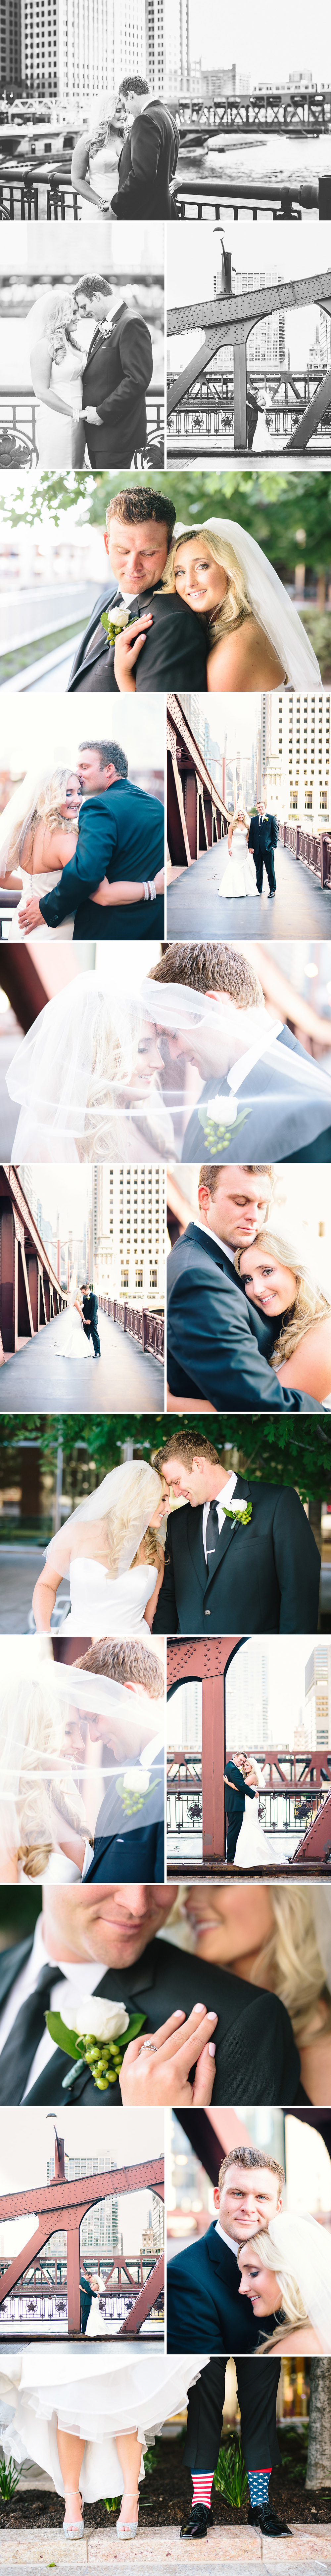 Chicago_Fine_Art_Wedding_Photography_kline2.jpg